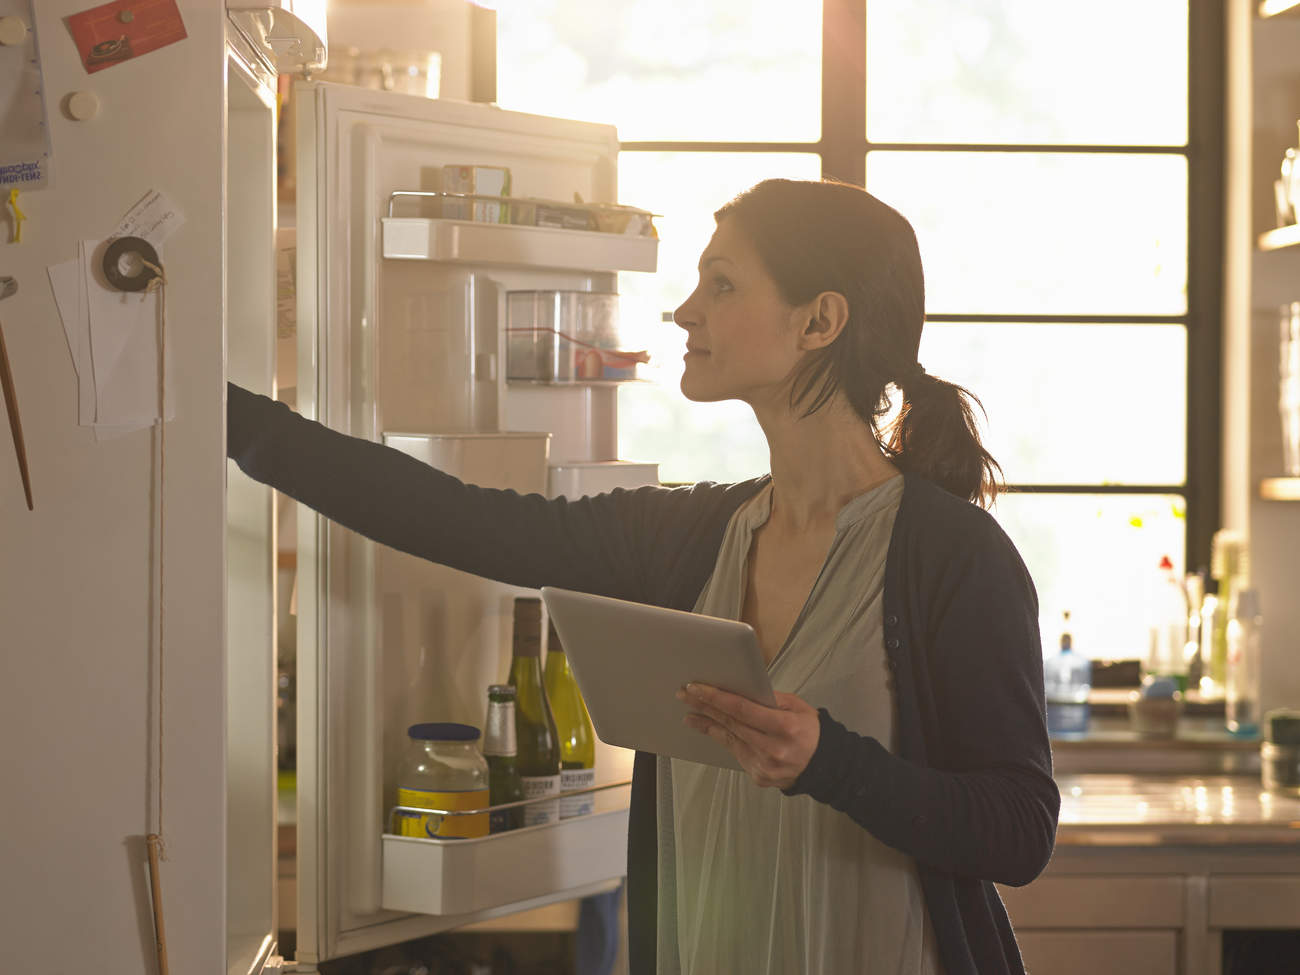 inside-of-rds-fridge-woman